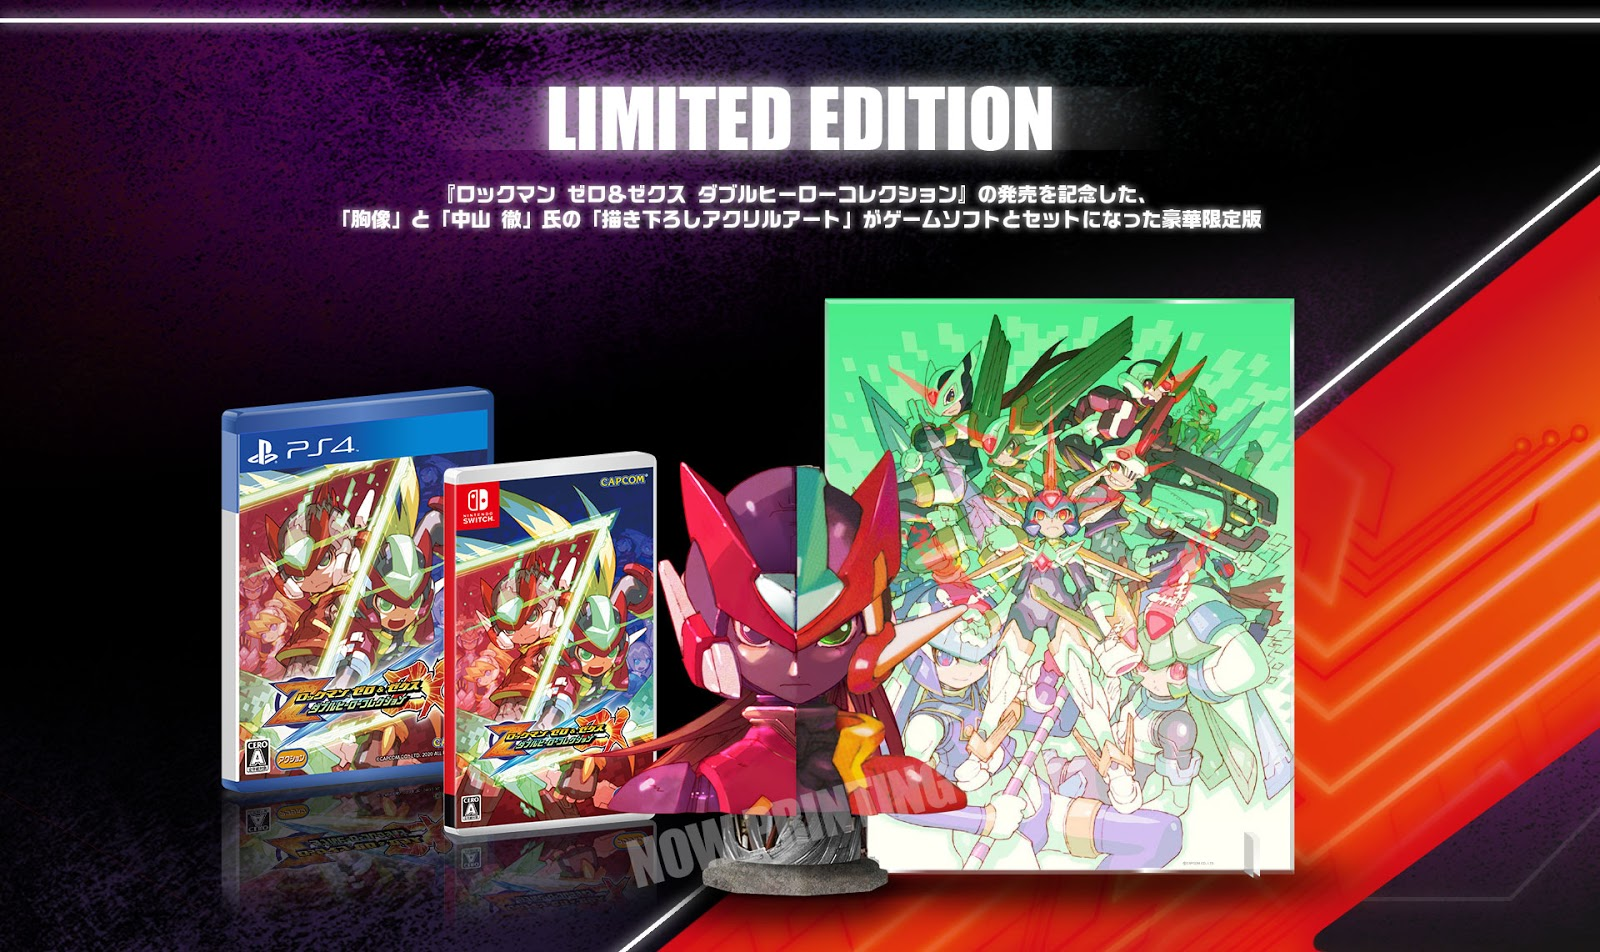 Mega Man Zero/ZX Legacy Collection is going to be killer, especially the Japanese Limited Edition screenshot